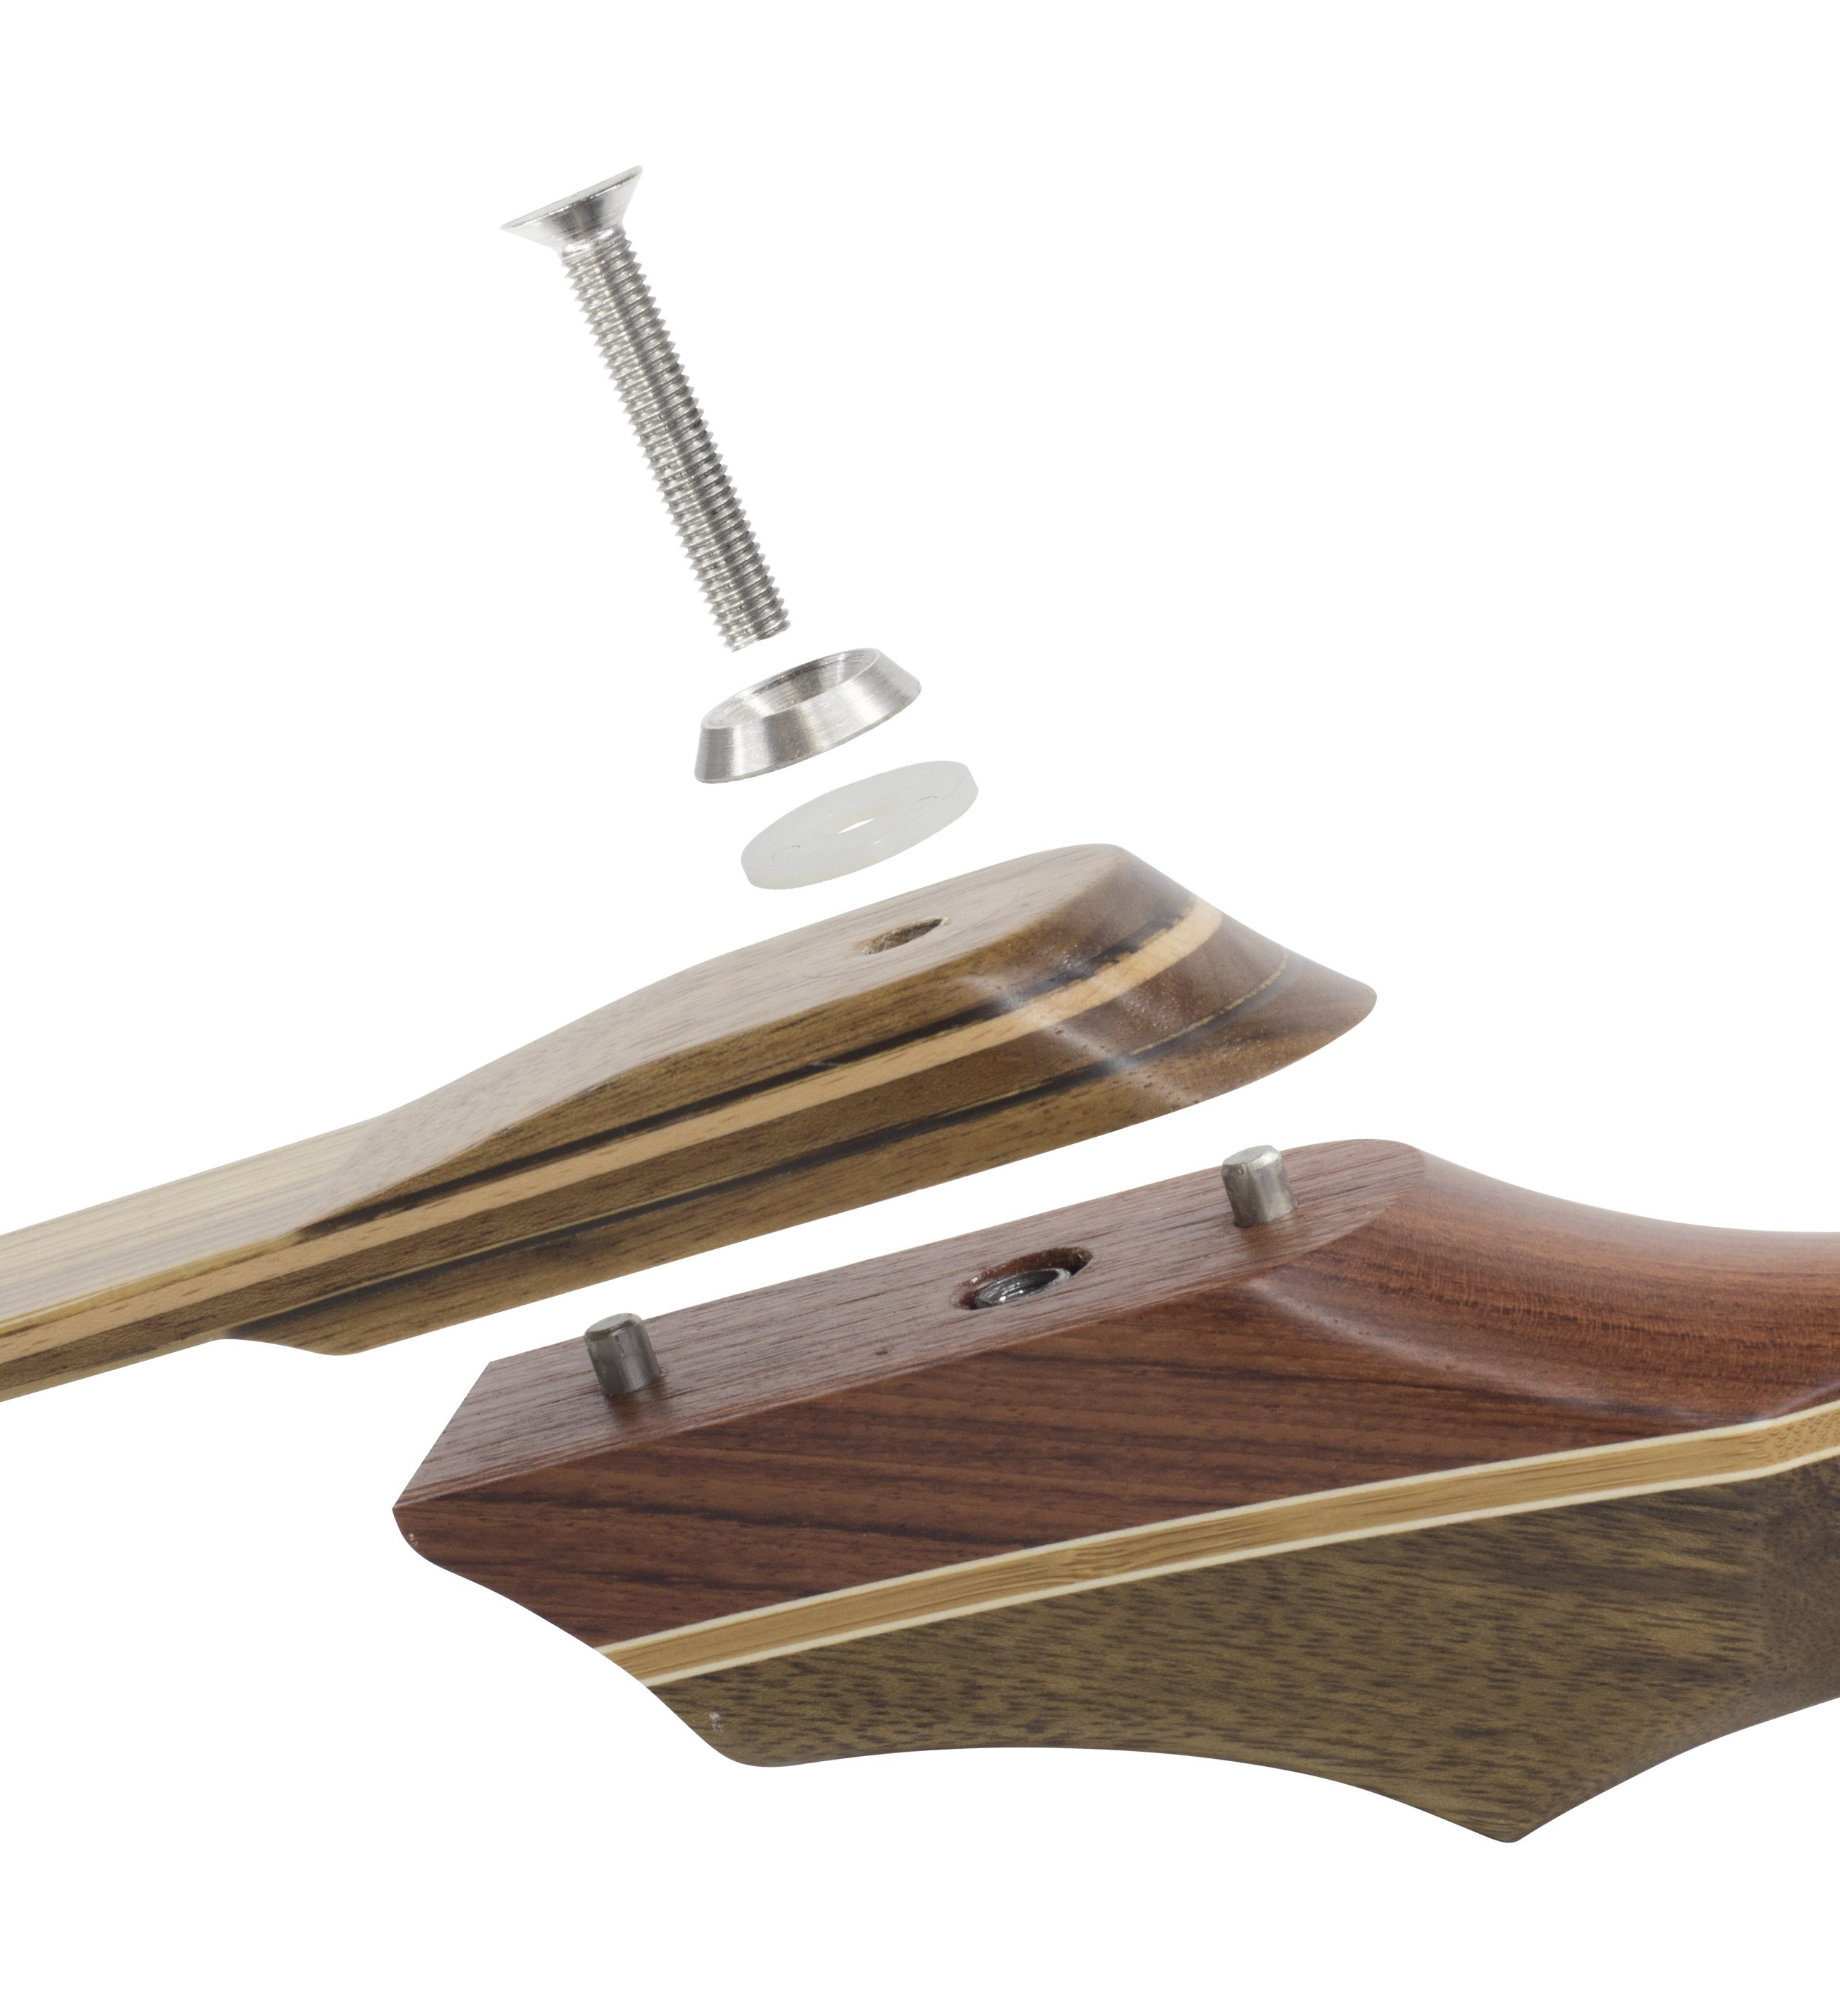 Kaiser Traditional Eger Take-Down Micata Traditionell RH / 45 lbs